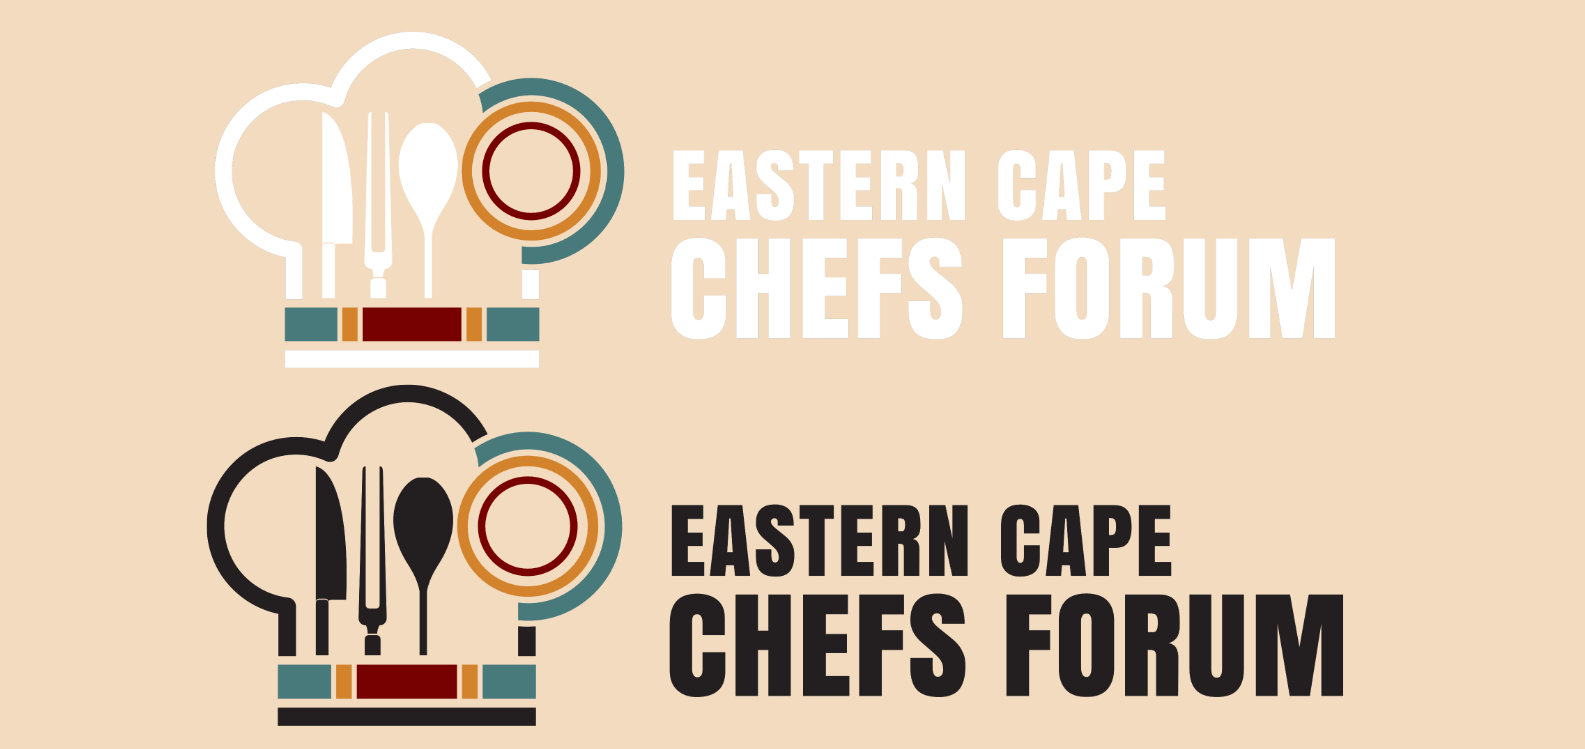 Eastern Cape Chefs Forum